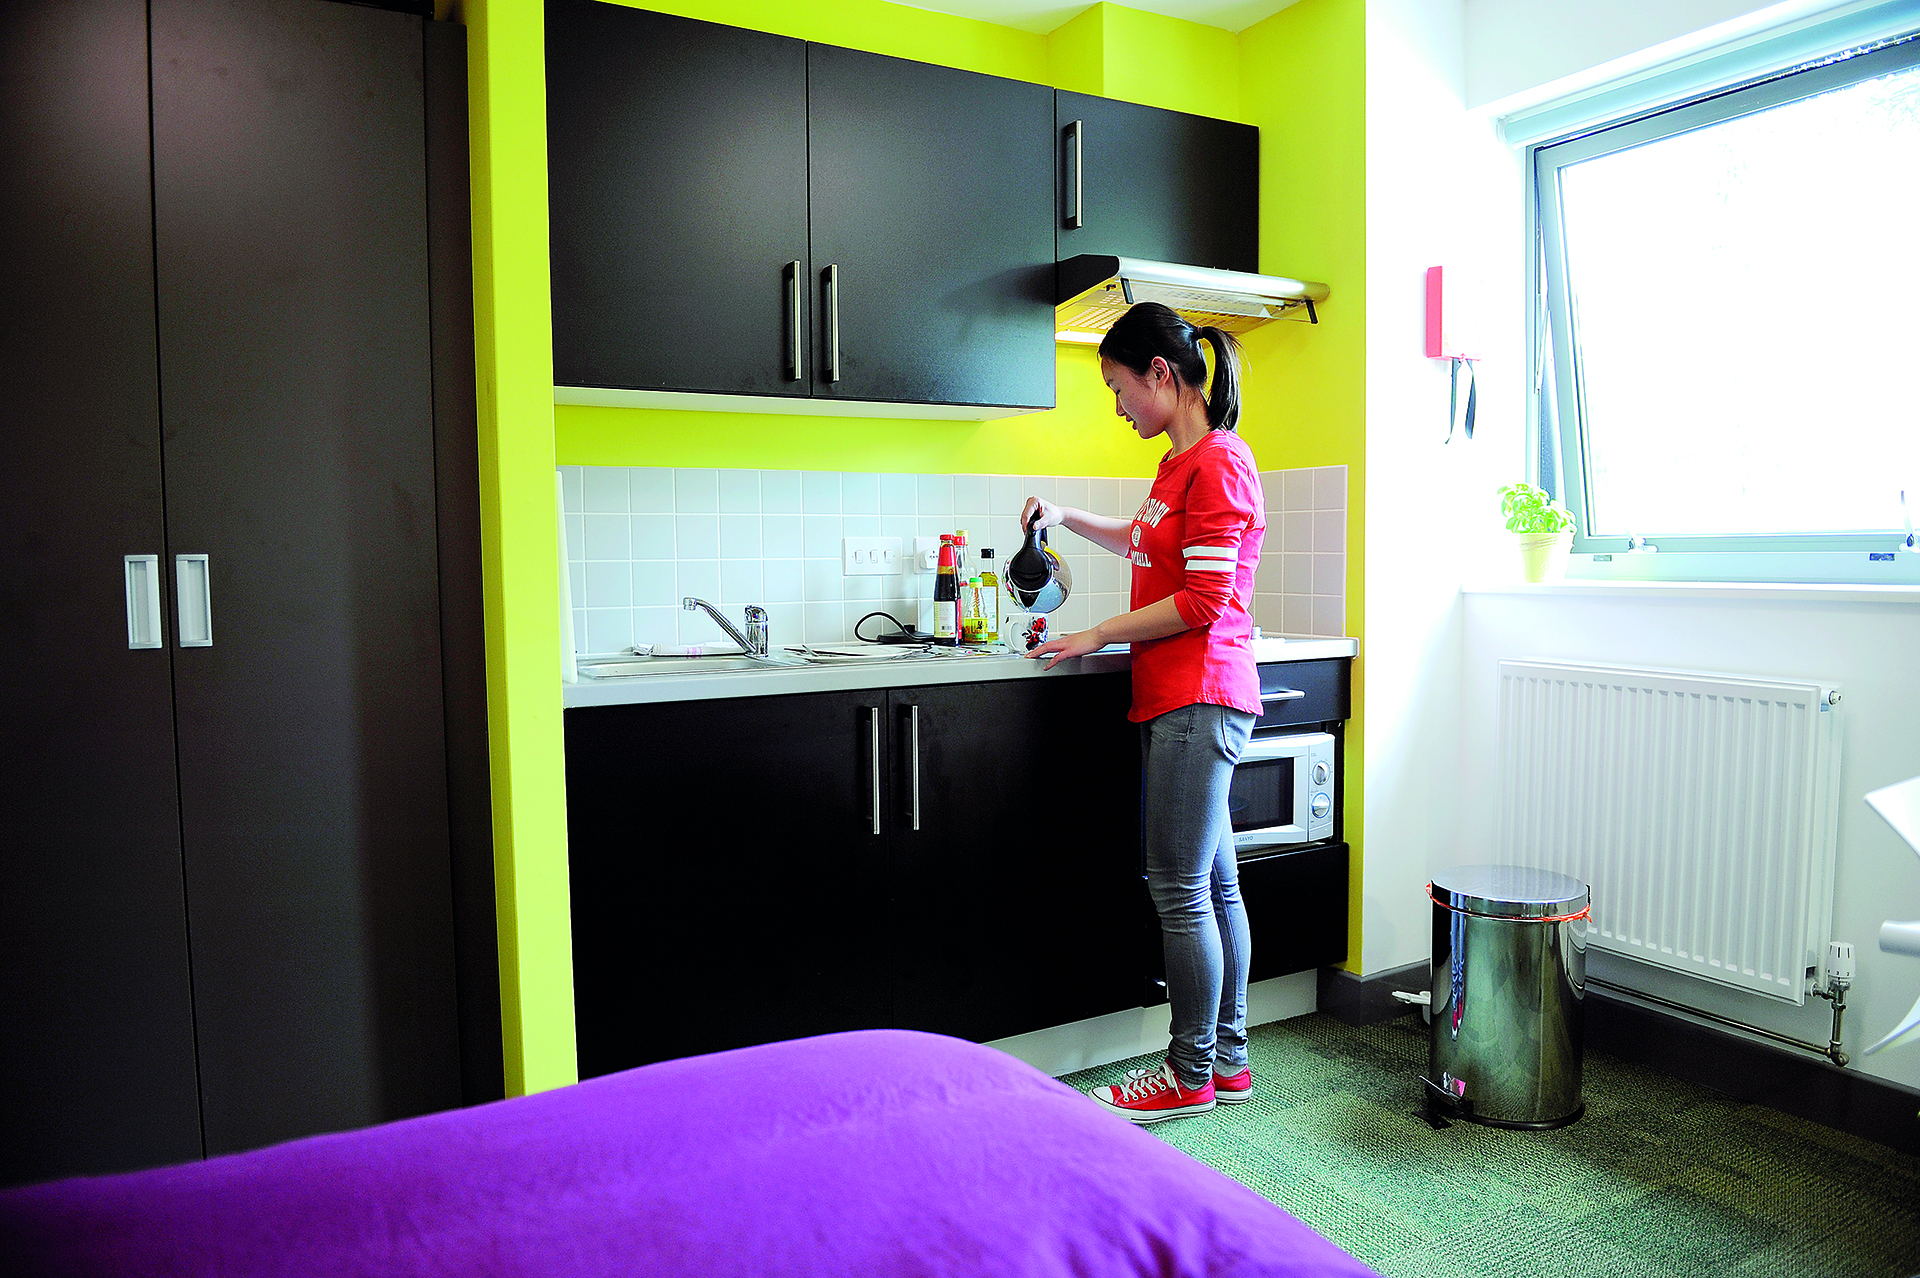 Student using Single Studio kitchen facilities at INTO University of Exeter